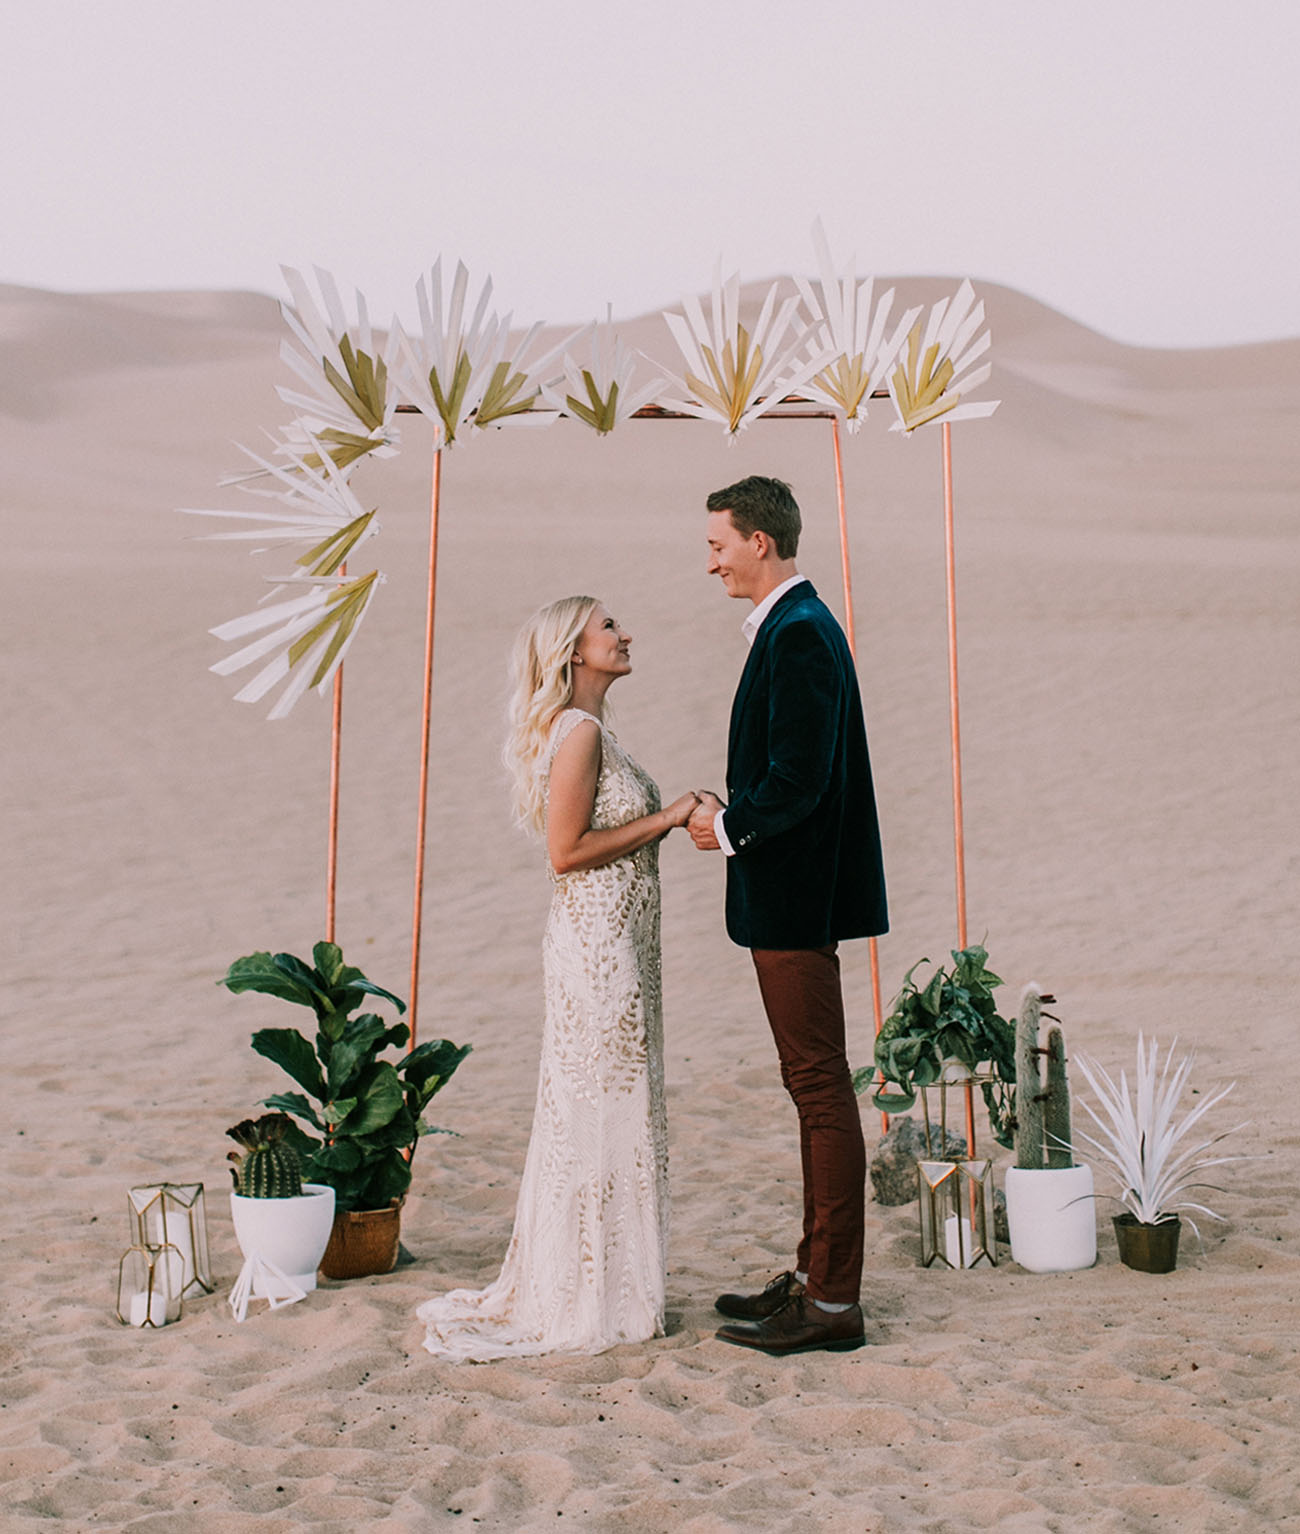 this modern geometric wedding shoot took place in the sand dunes